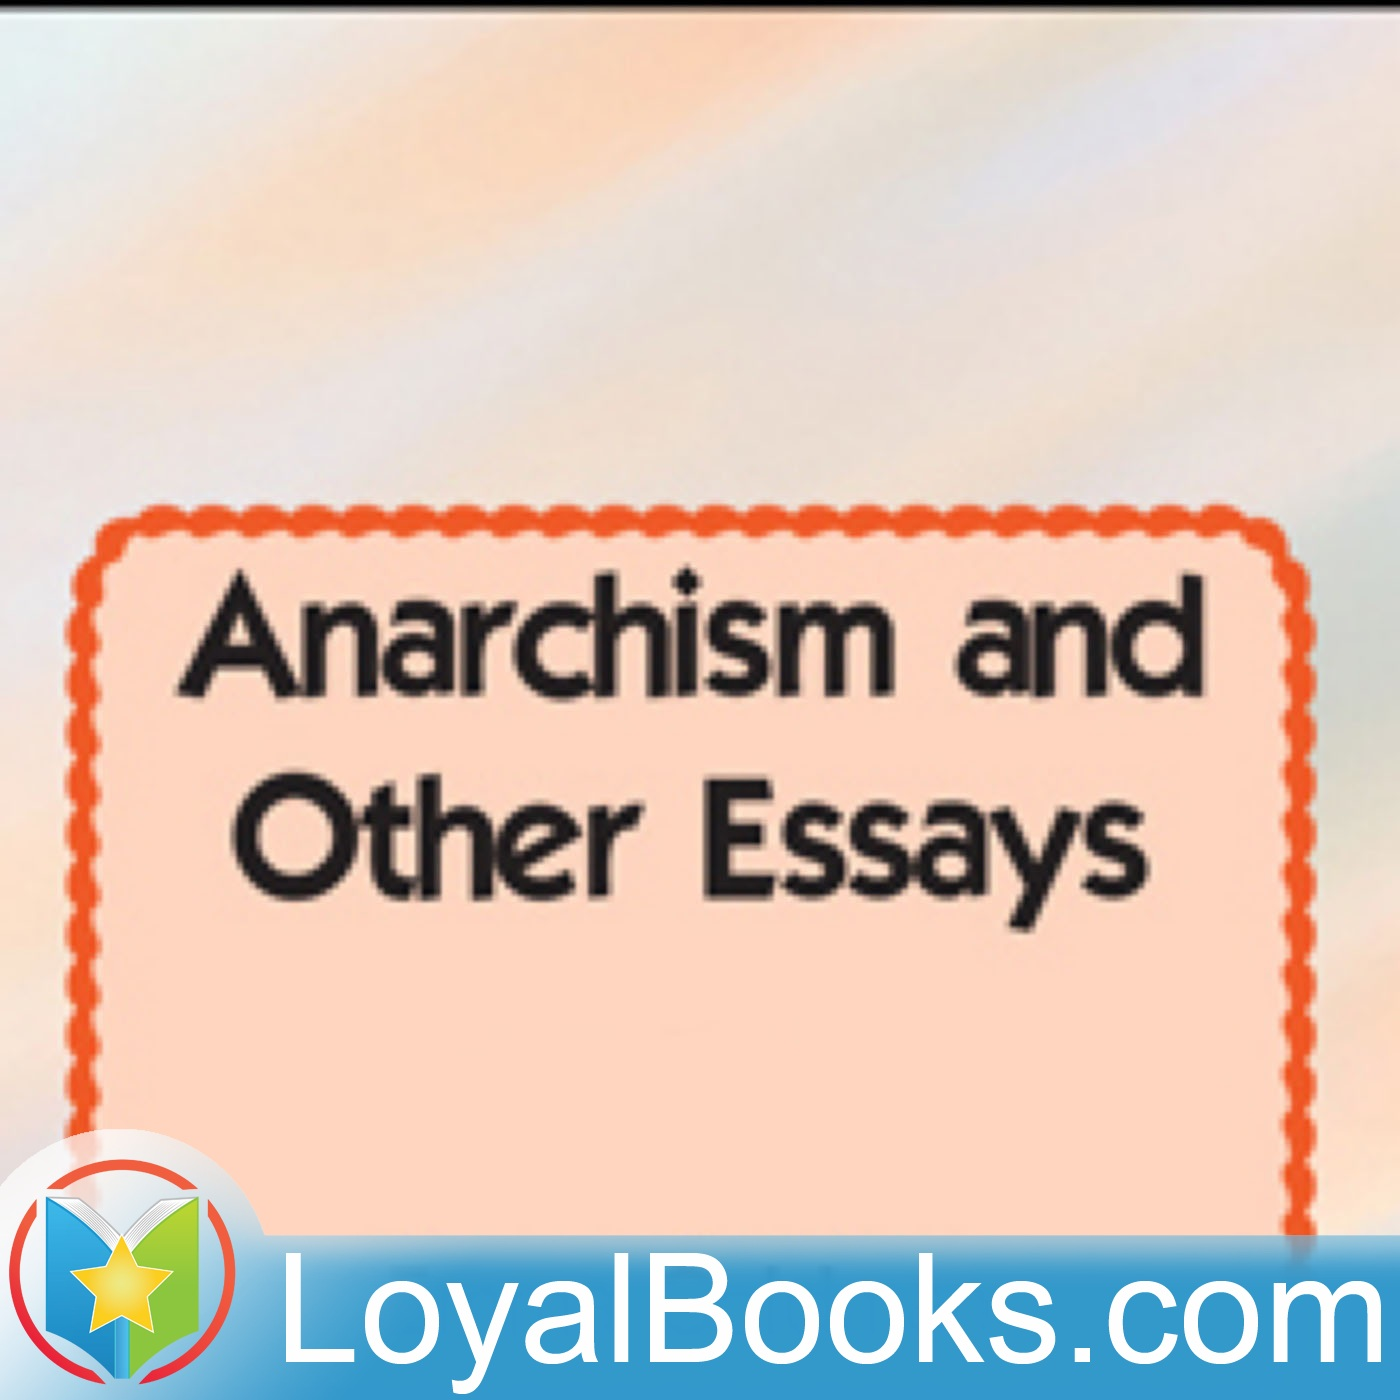 013 Anarchism And Other Essays Essay Example By Emma Incredible Goldman Summary Mla Citation Full